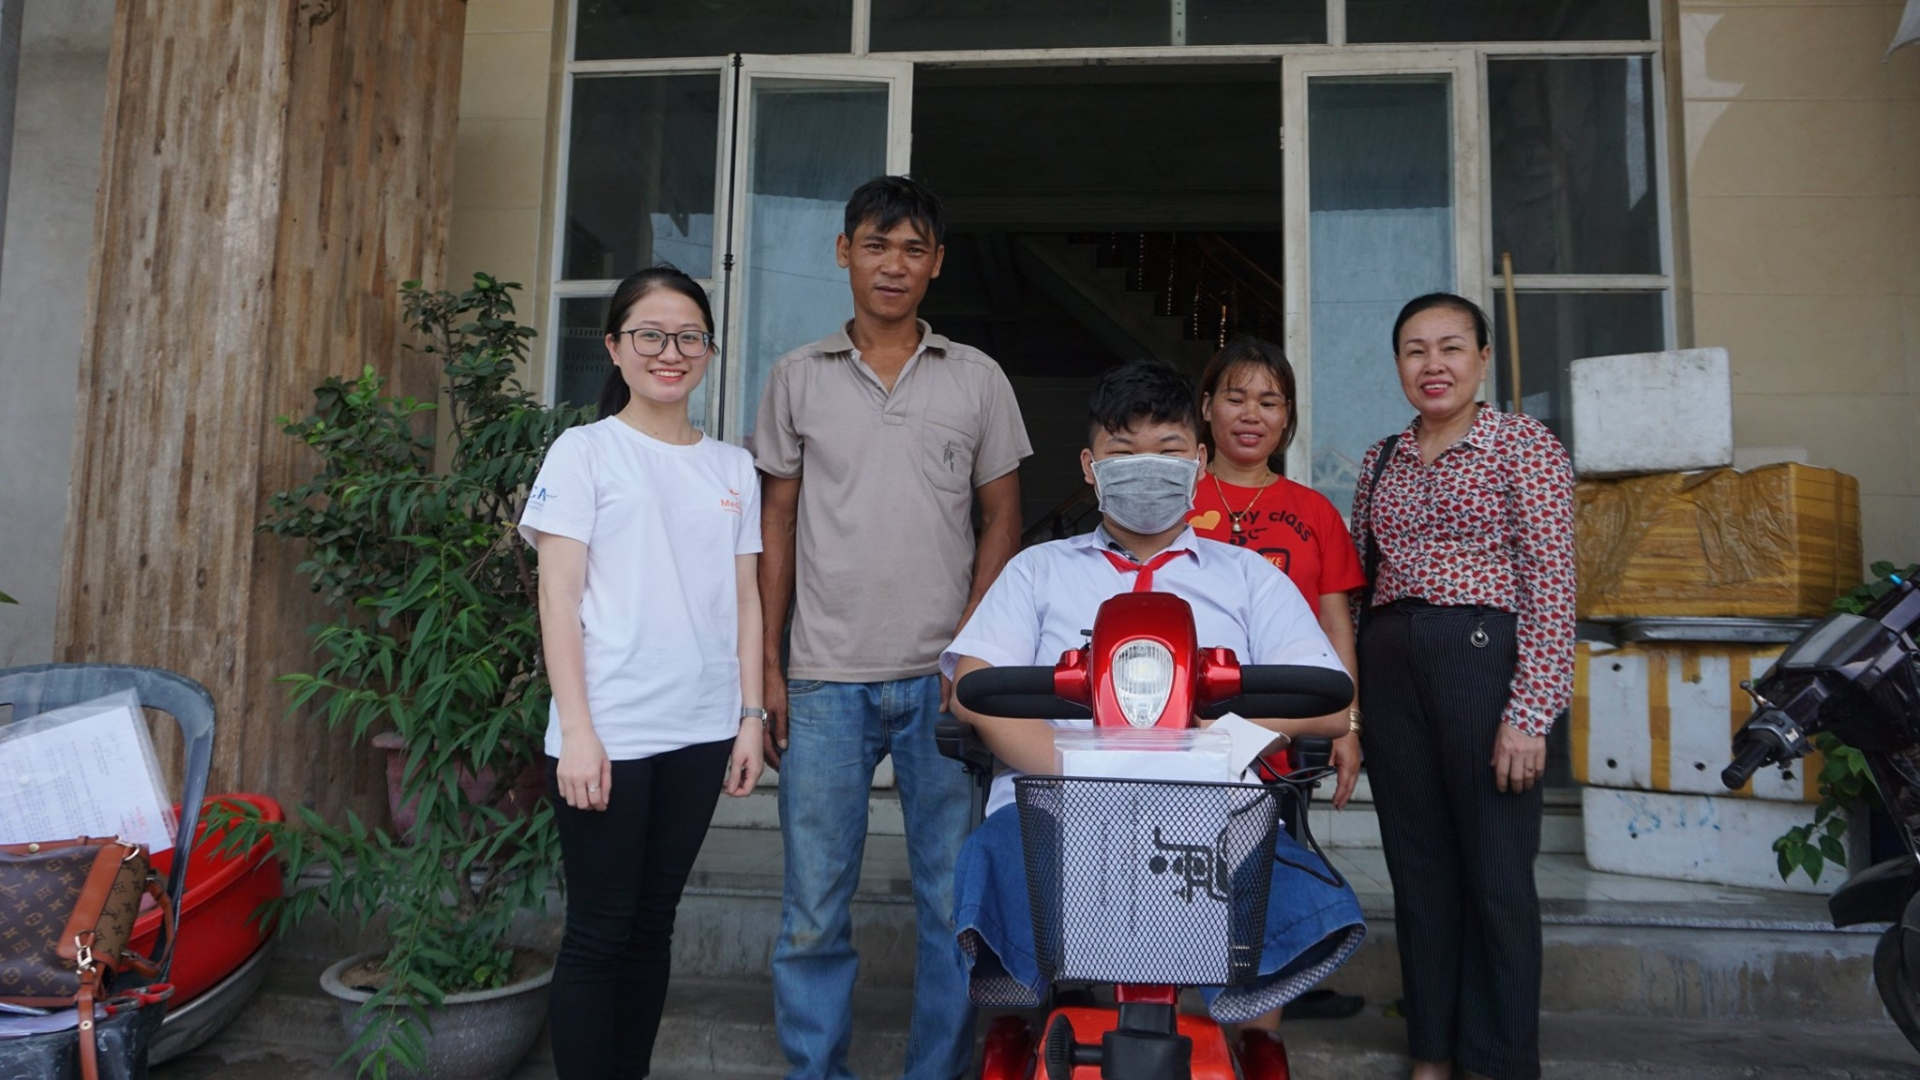 medipeace vietnam presents electric wheelchairs to children in quang tri